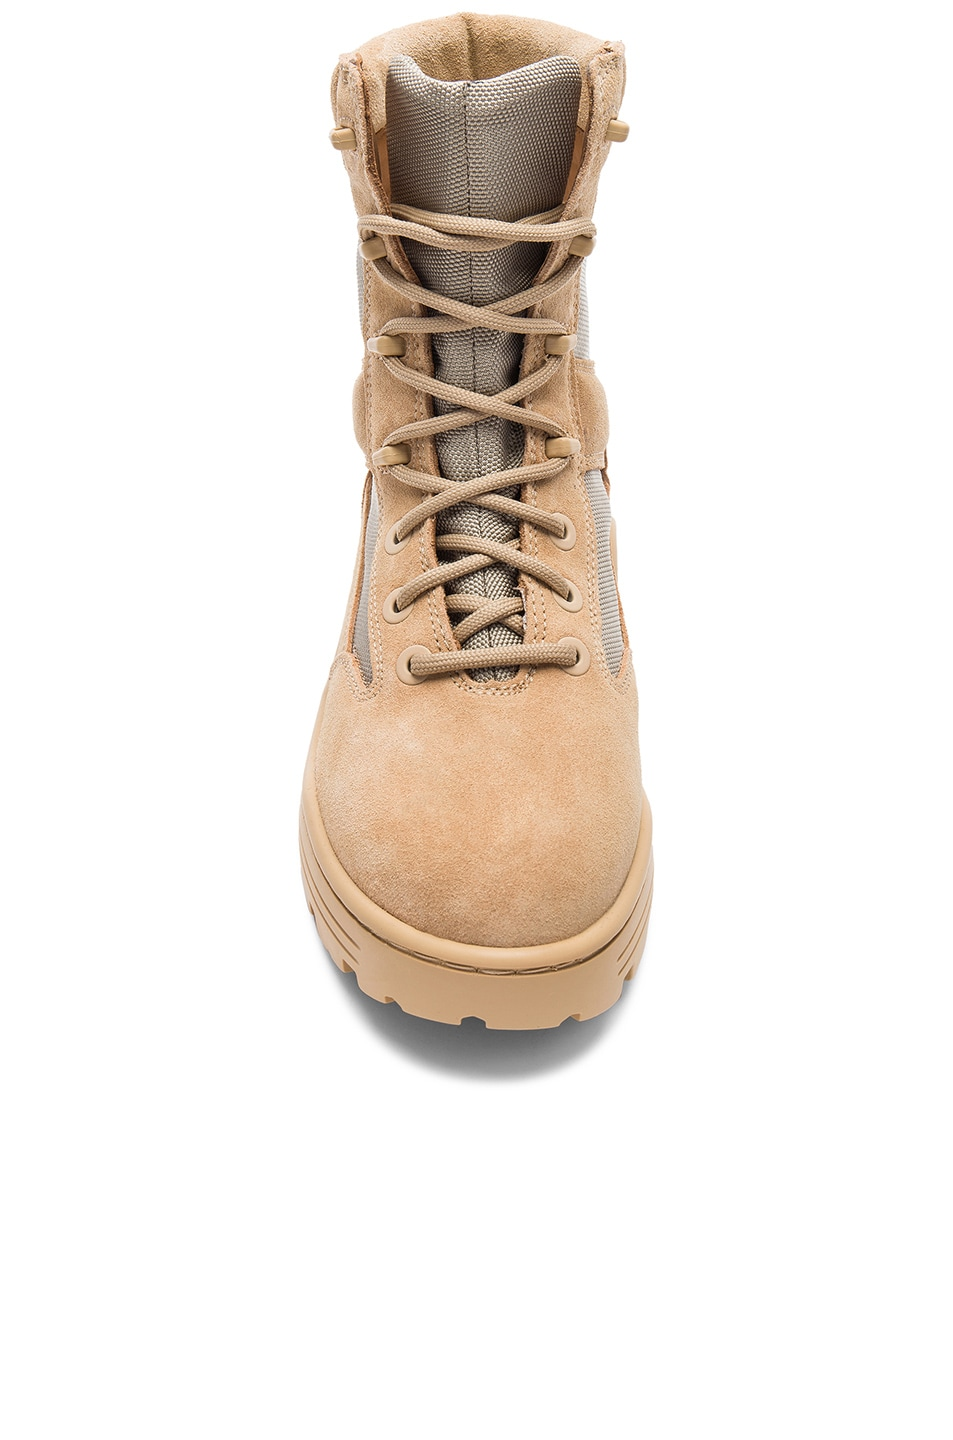 162a52158de0a Image 4 of YEEZY Season 4 Suede Combat Boots in Sand